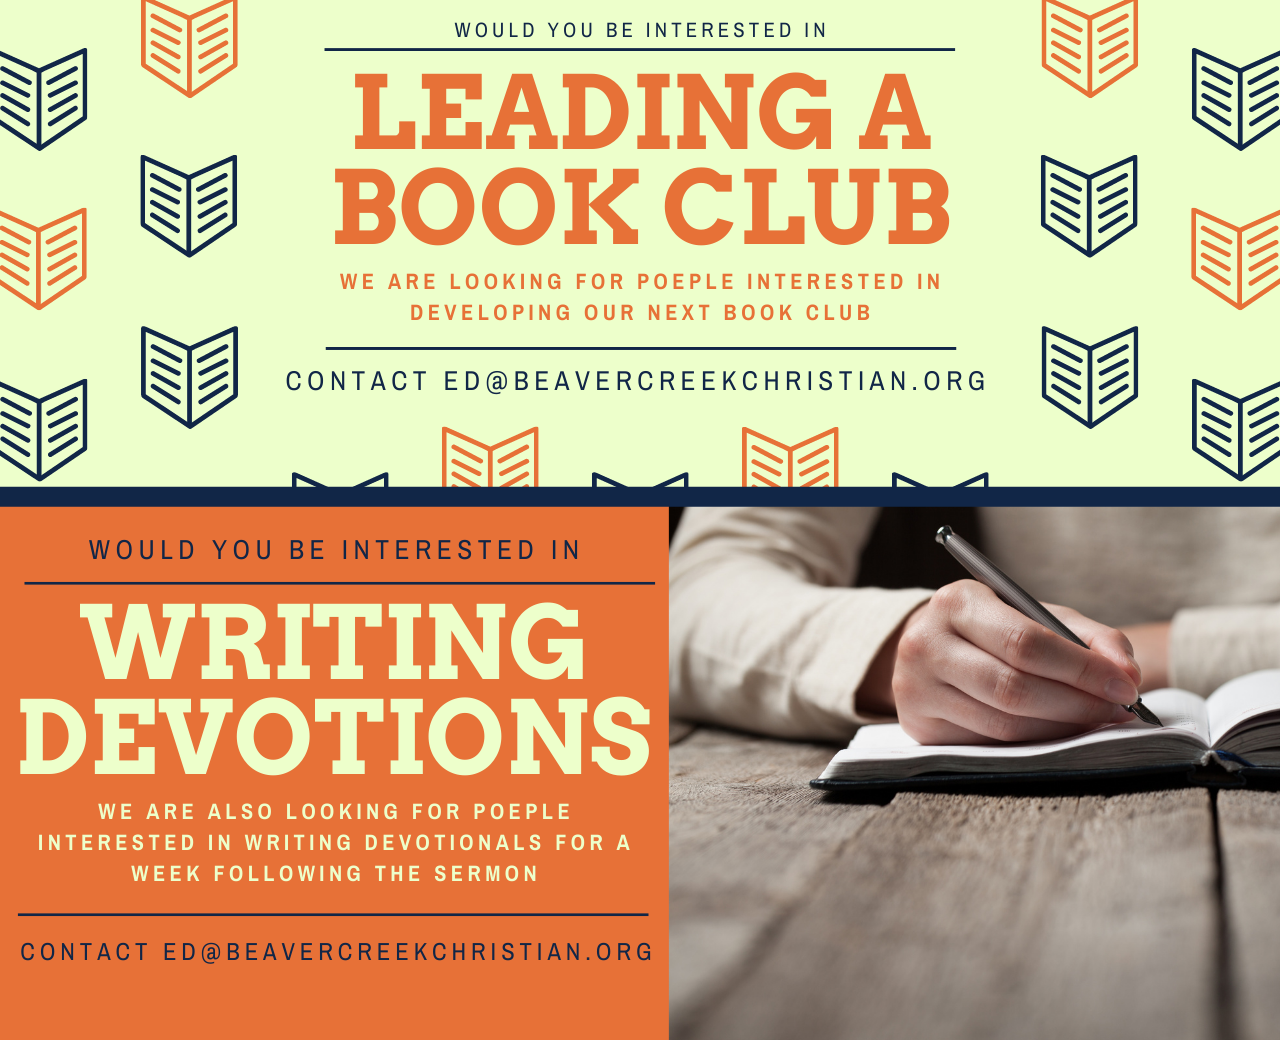 Servants Needed! – To write devotions and lead a book club